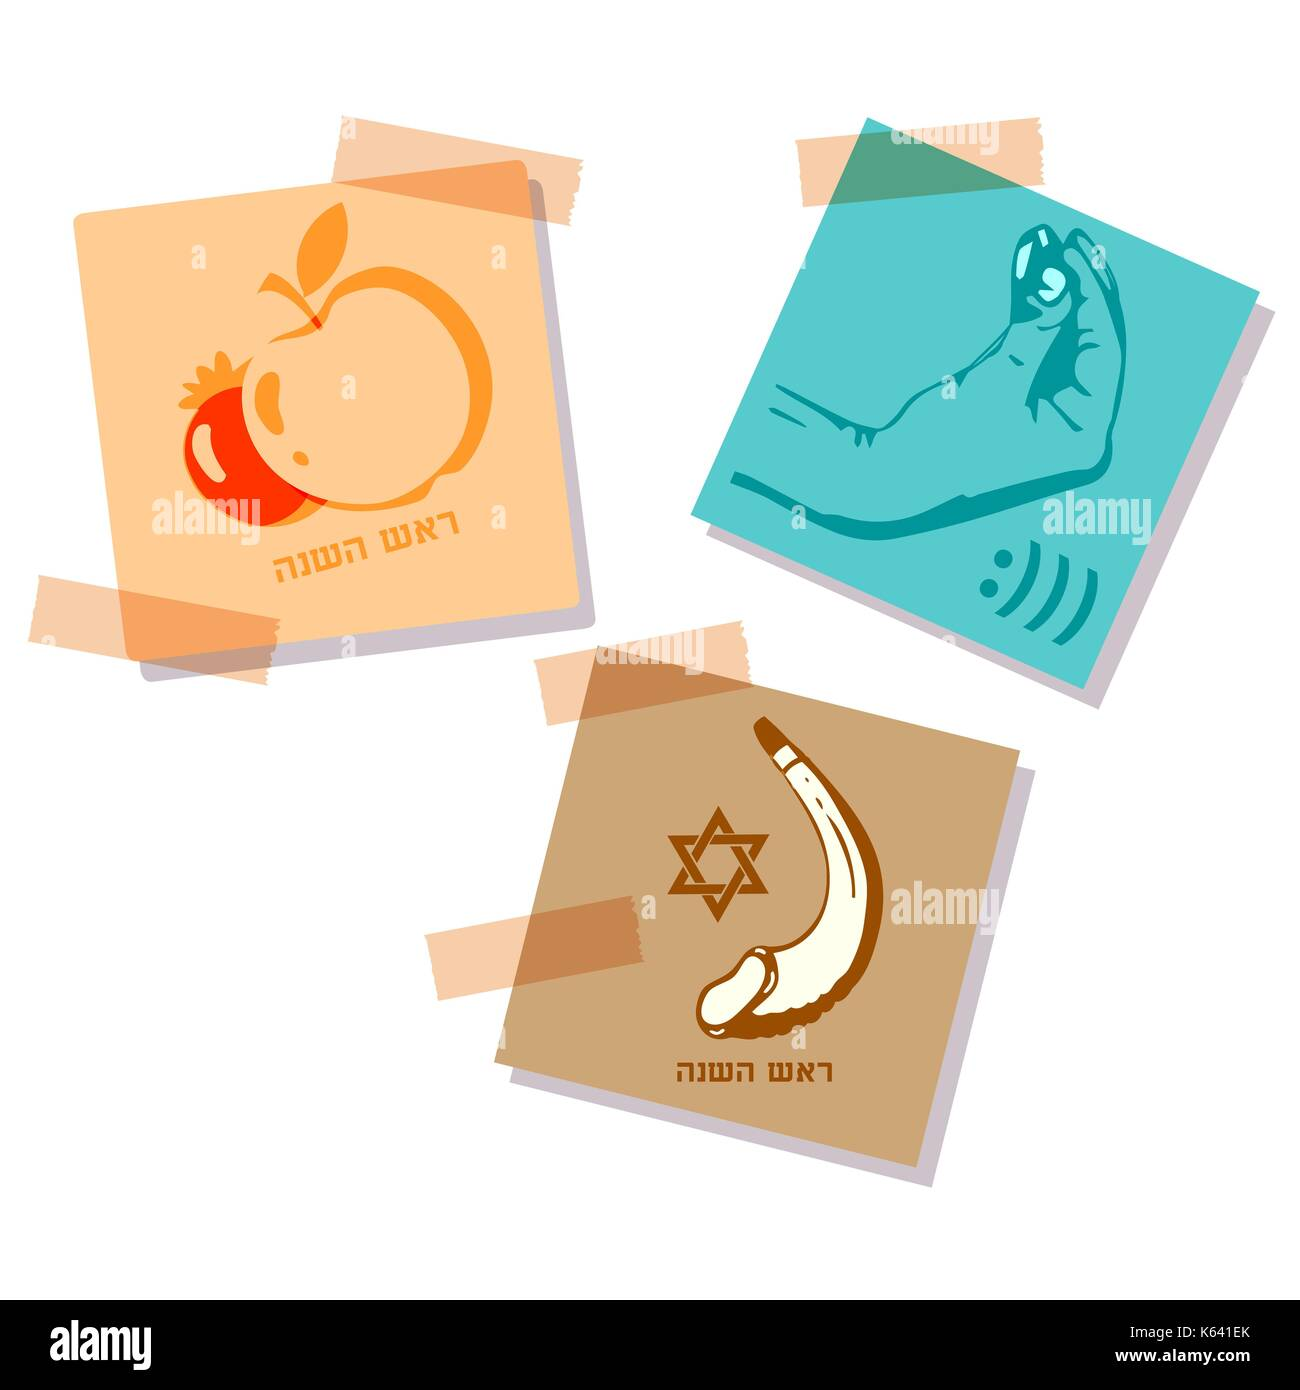 Hand drawn elements for Rosh Hashanah Jewish New Year with text. Set of stickers for decoration Rosh Hashanah symbols. - Stock Image